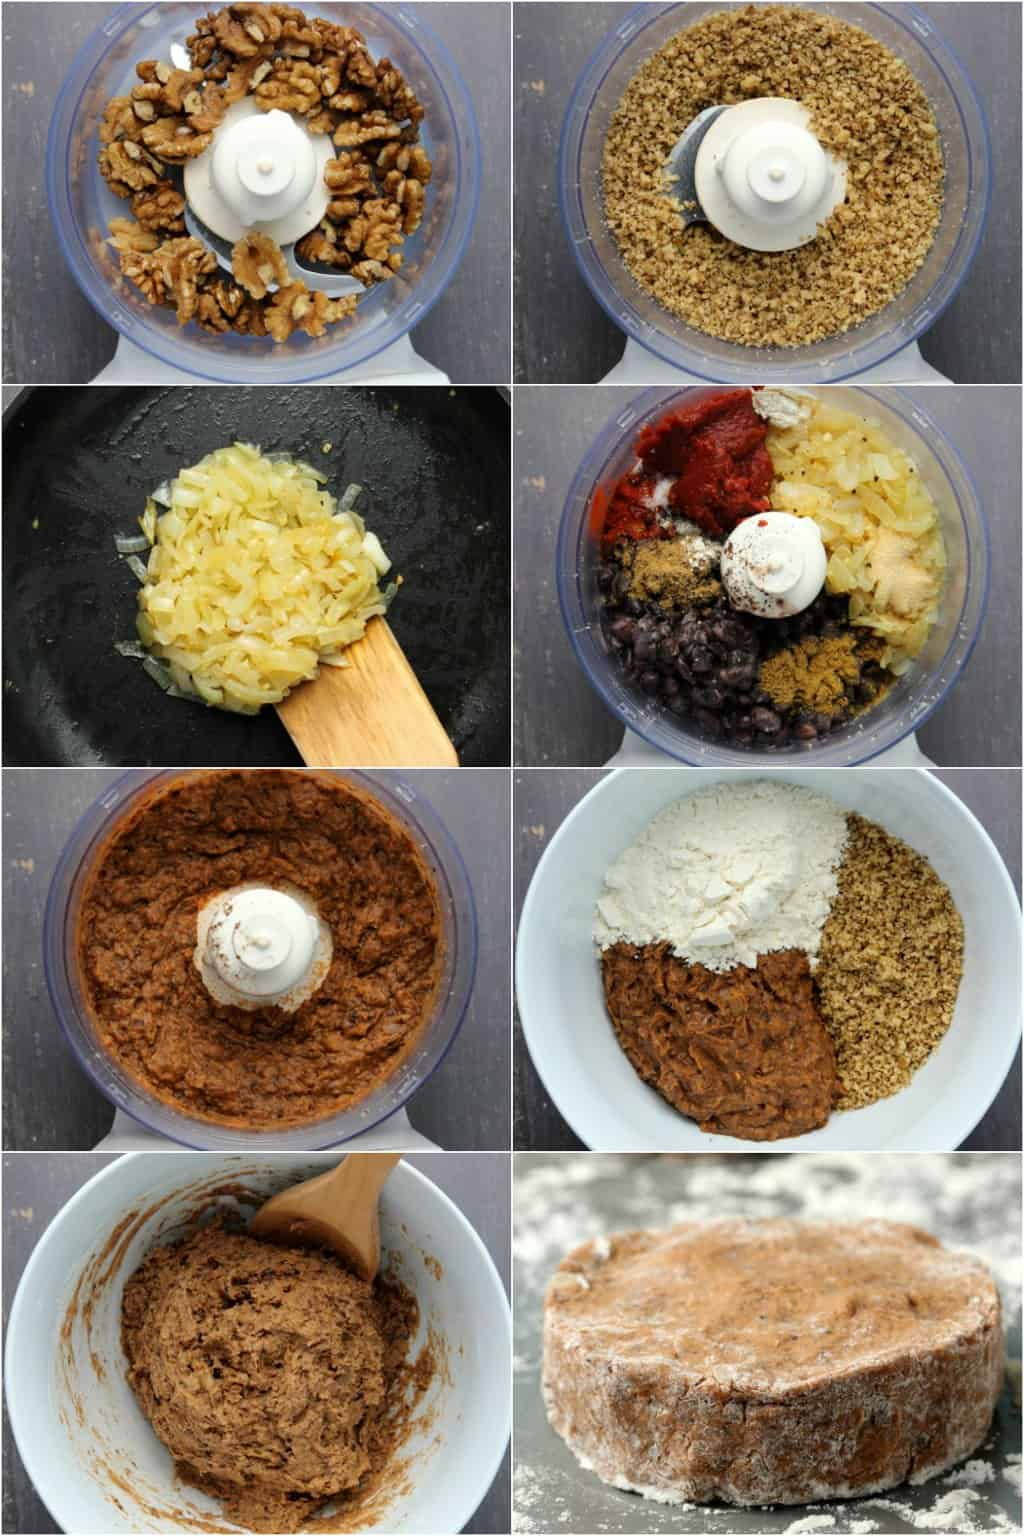 Step by step process photo collage of making black bean burgers.